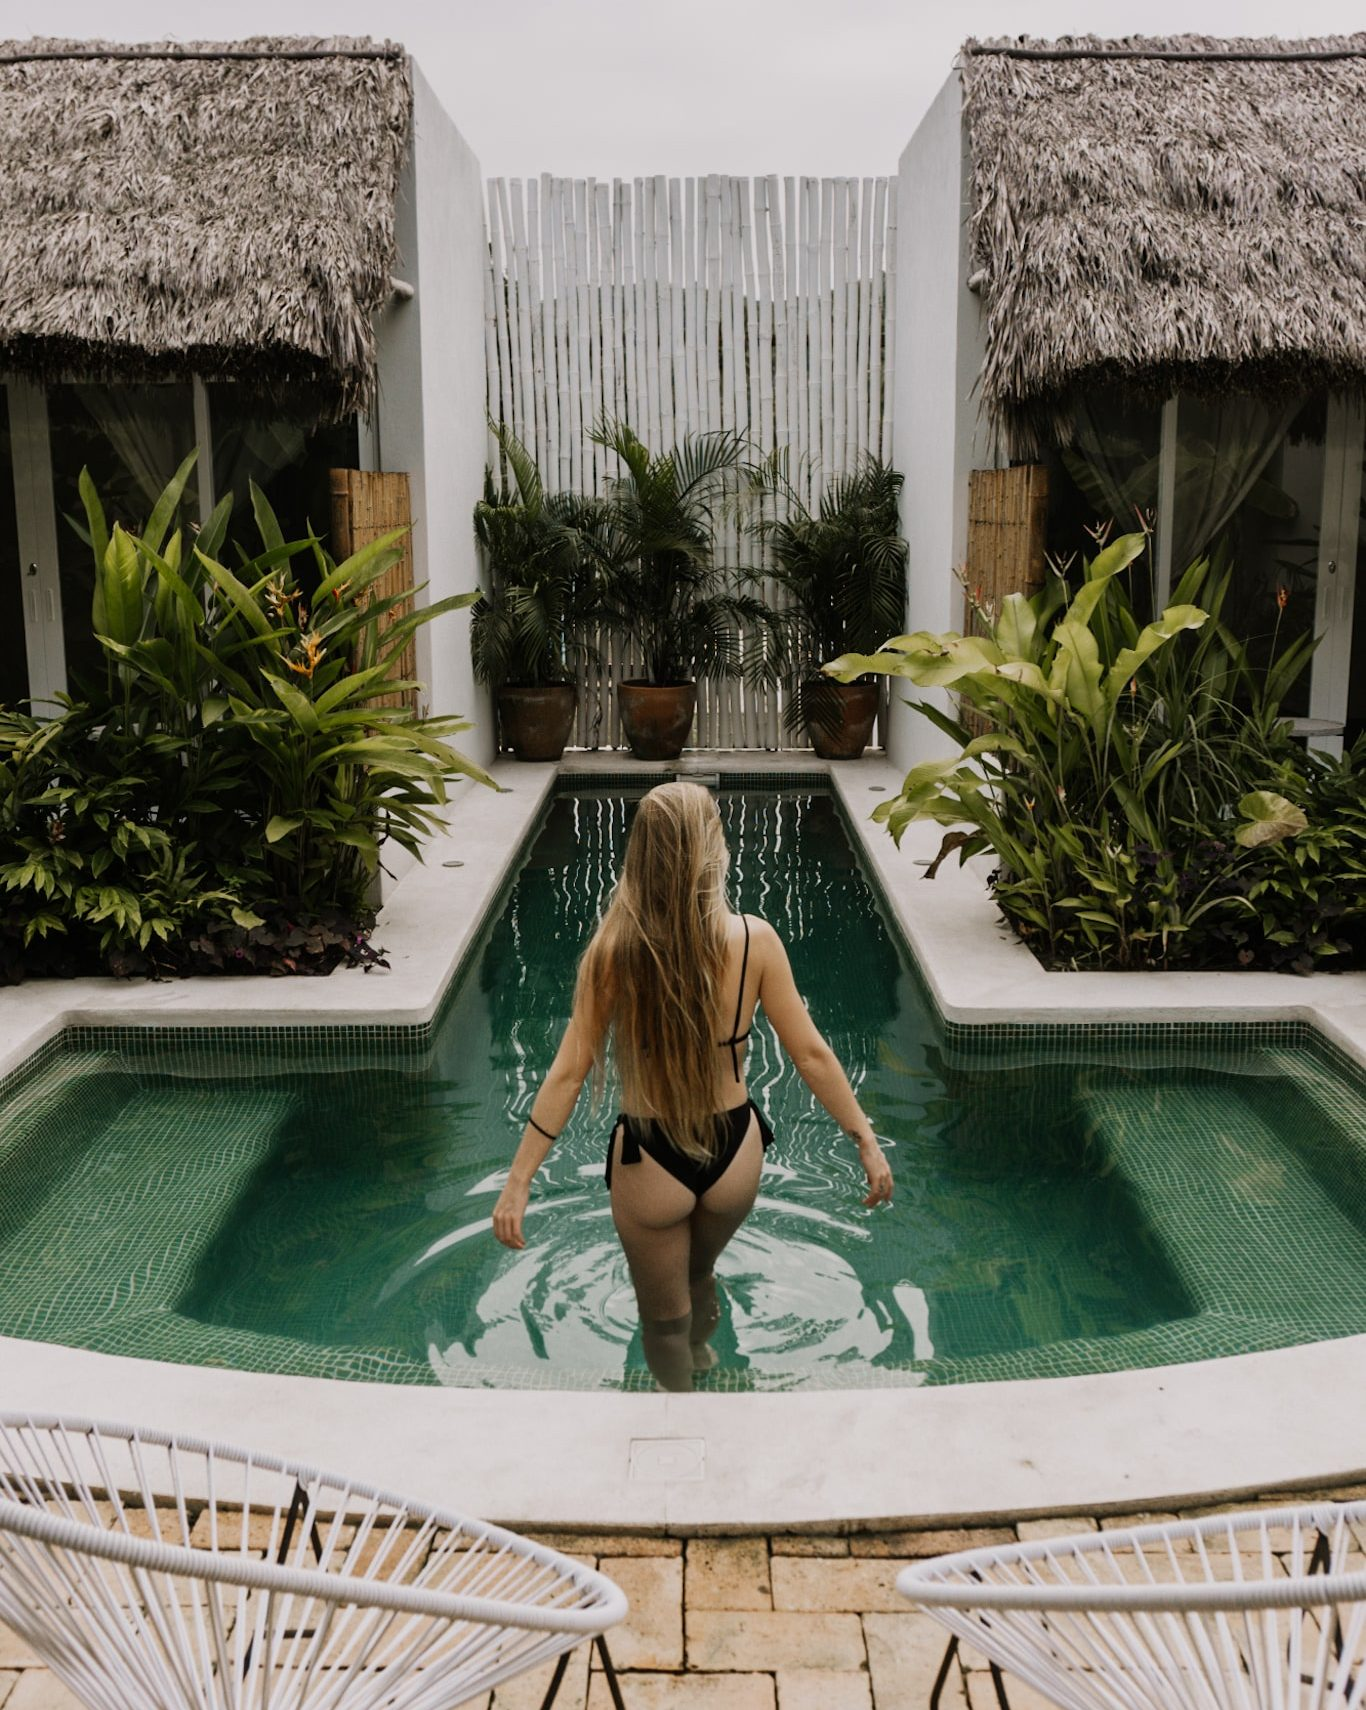 Marii Hotel Costero in San Pancho | Bucketlist Bri #travel #mexico